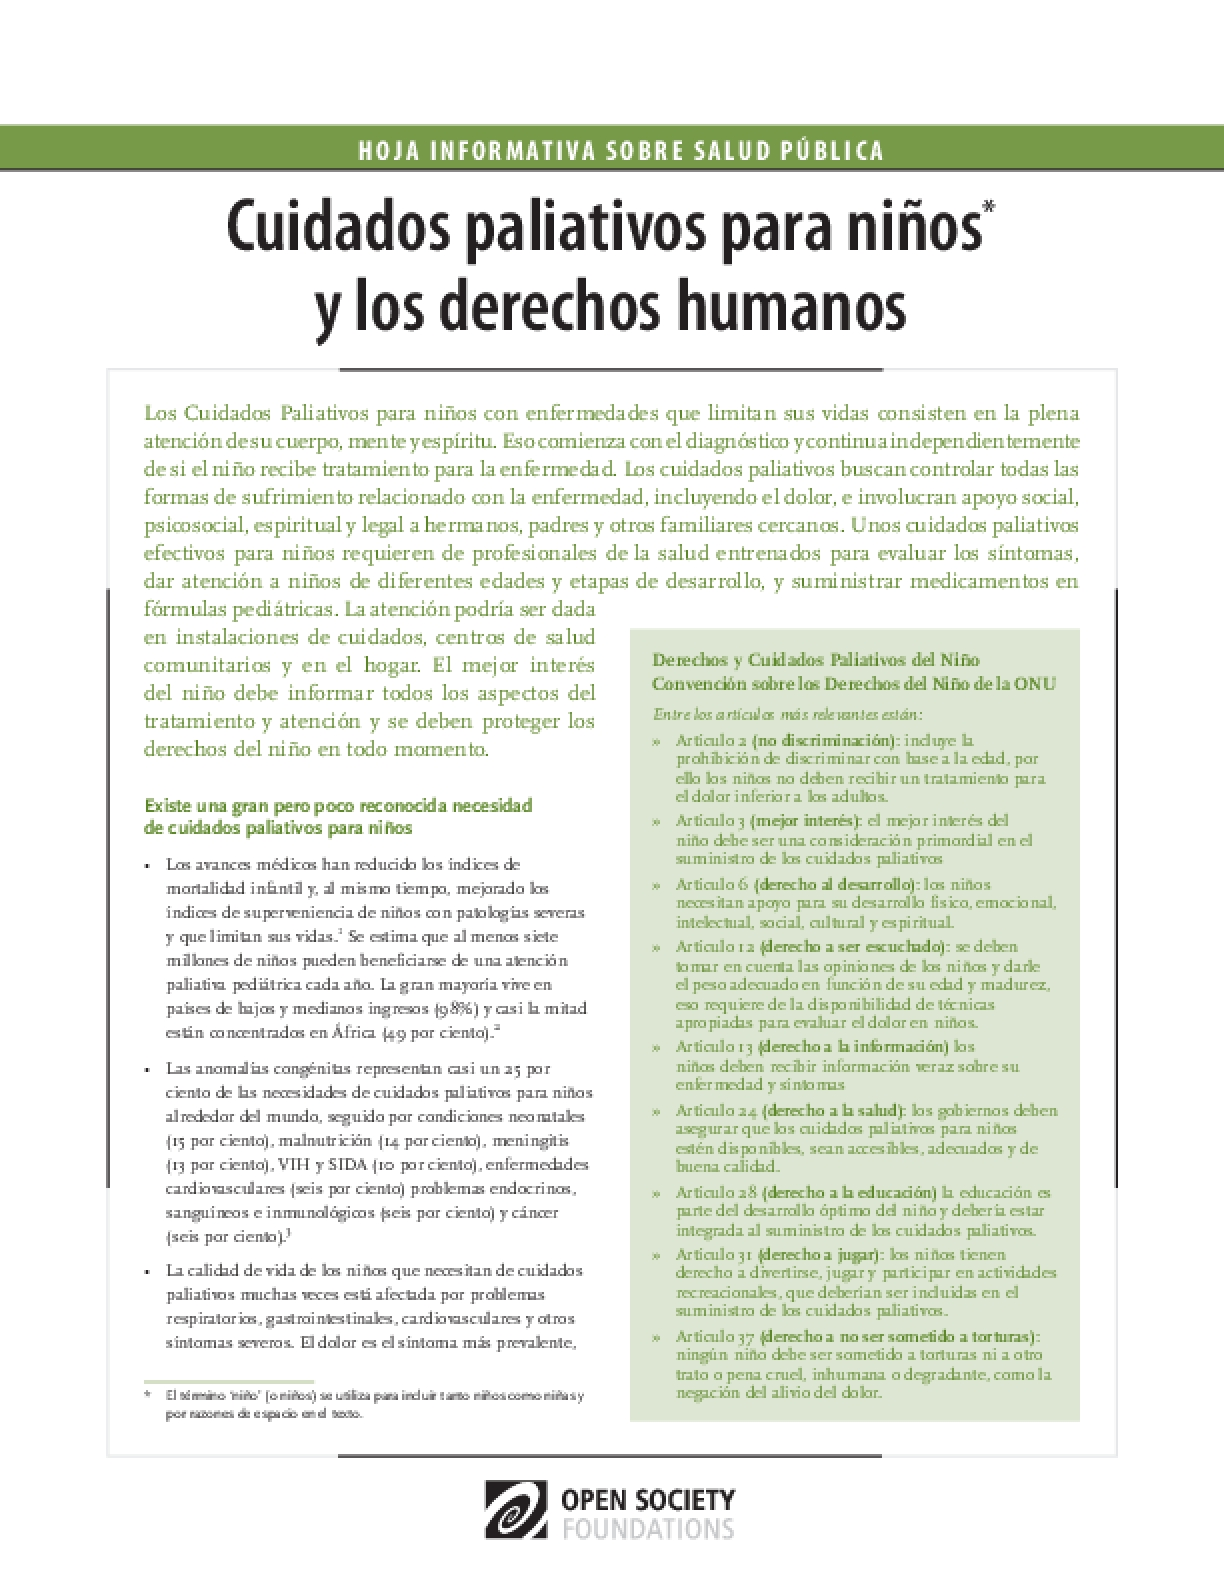 Children's Palliative Care and Human Rights: Spanish